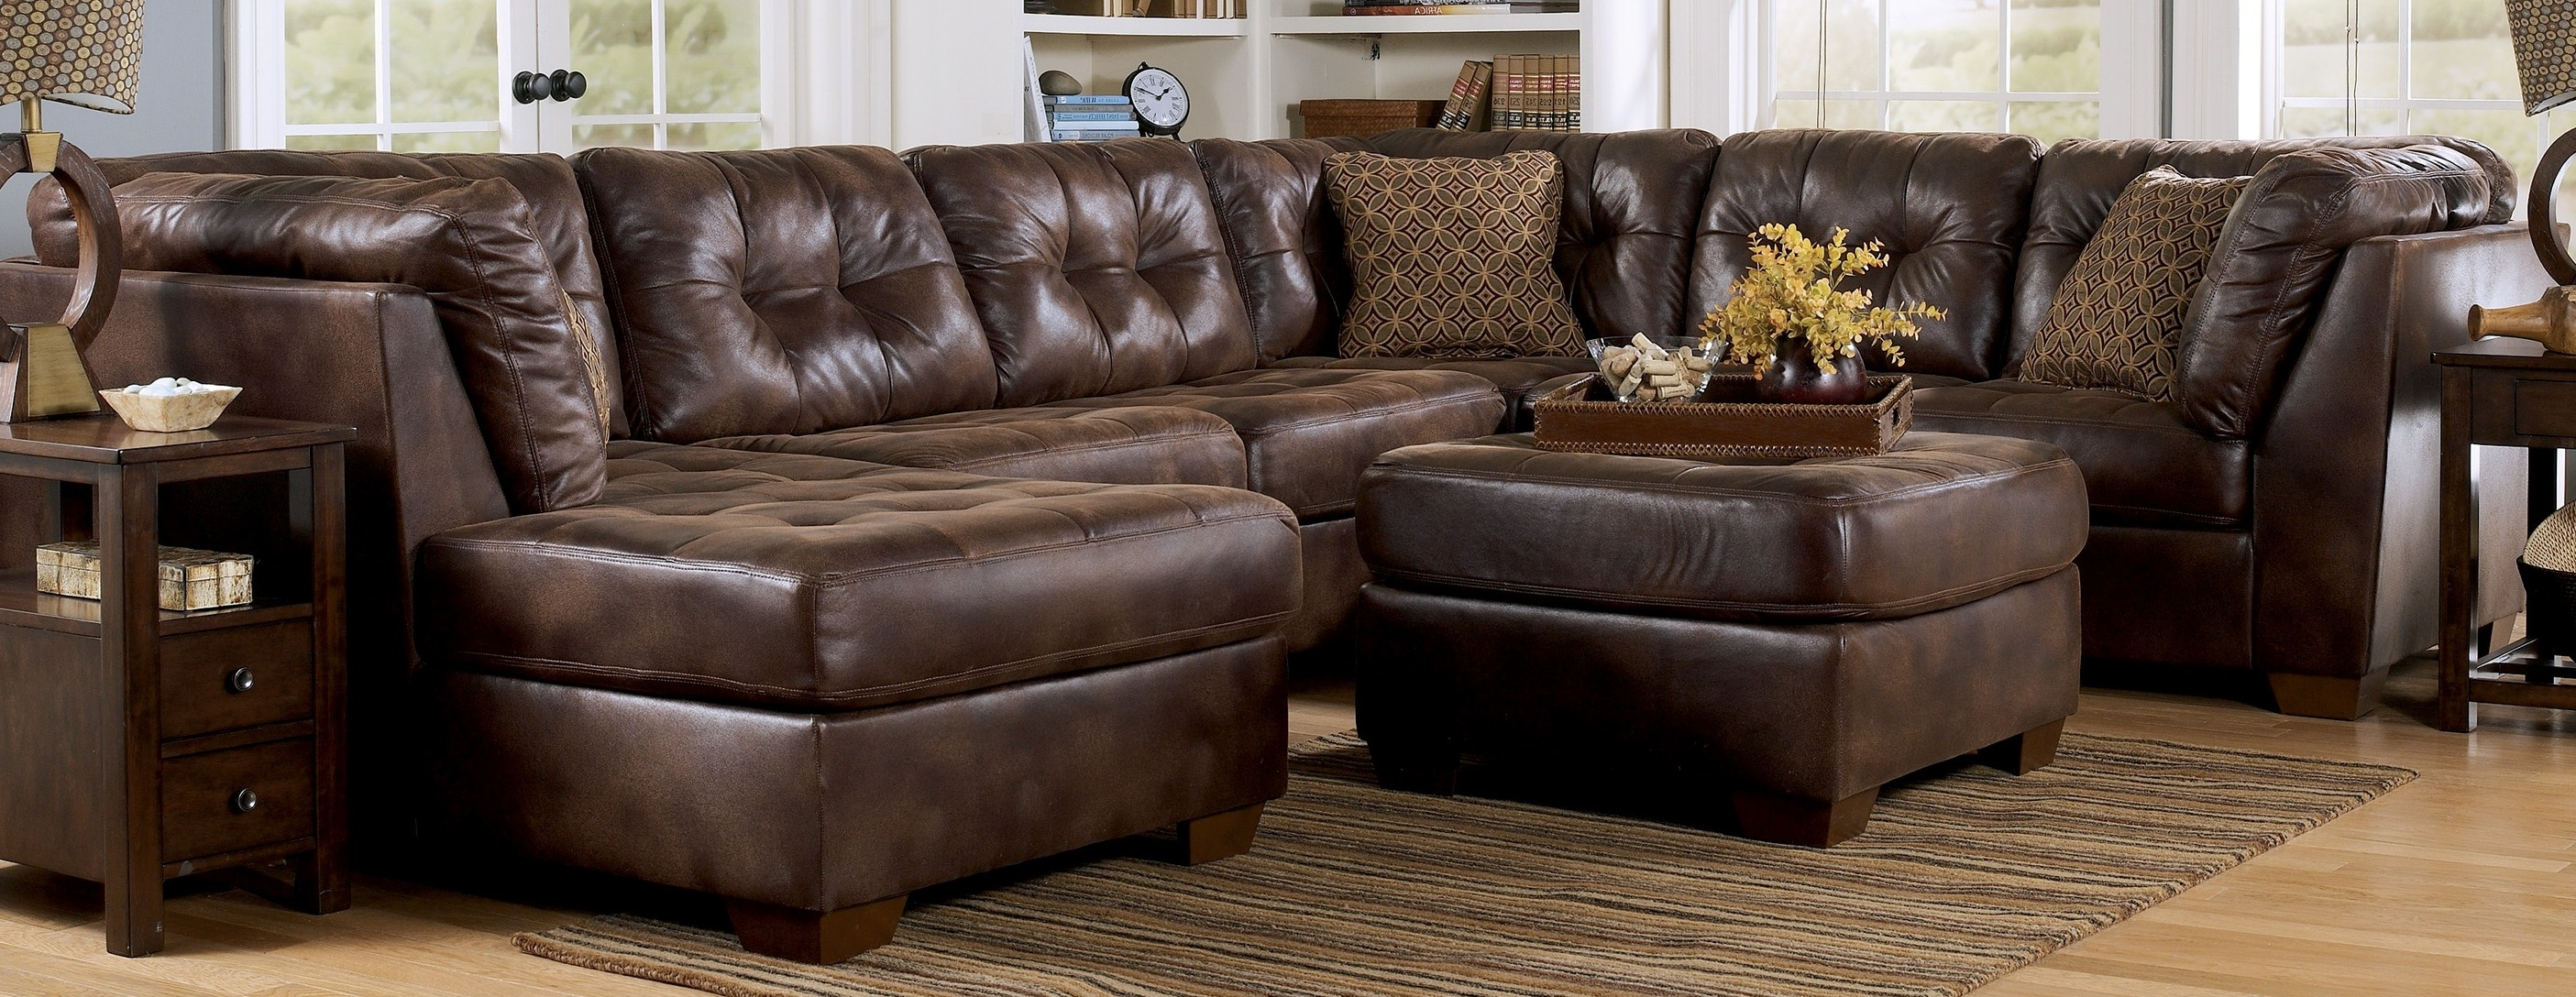 Brown Leather Sectional Sofa With Chaise Within Famous High End Leather Sectional Sofas (View 2 of 20)